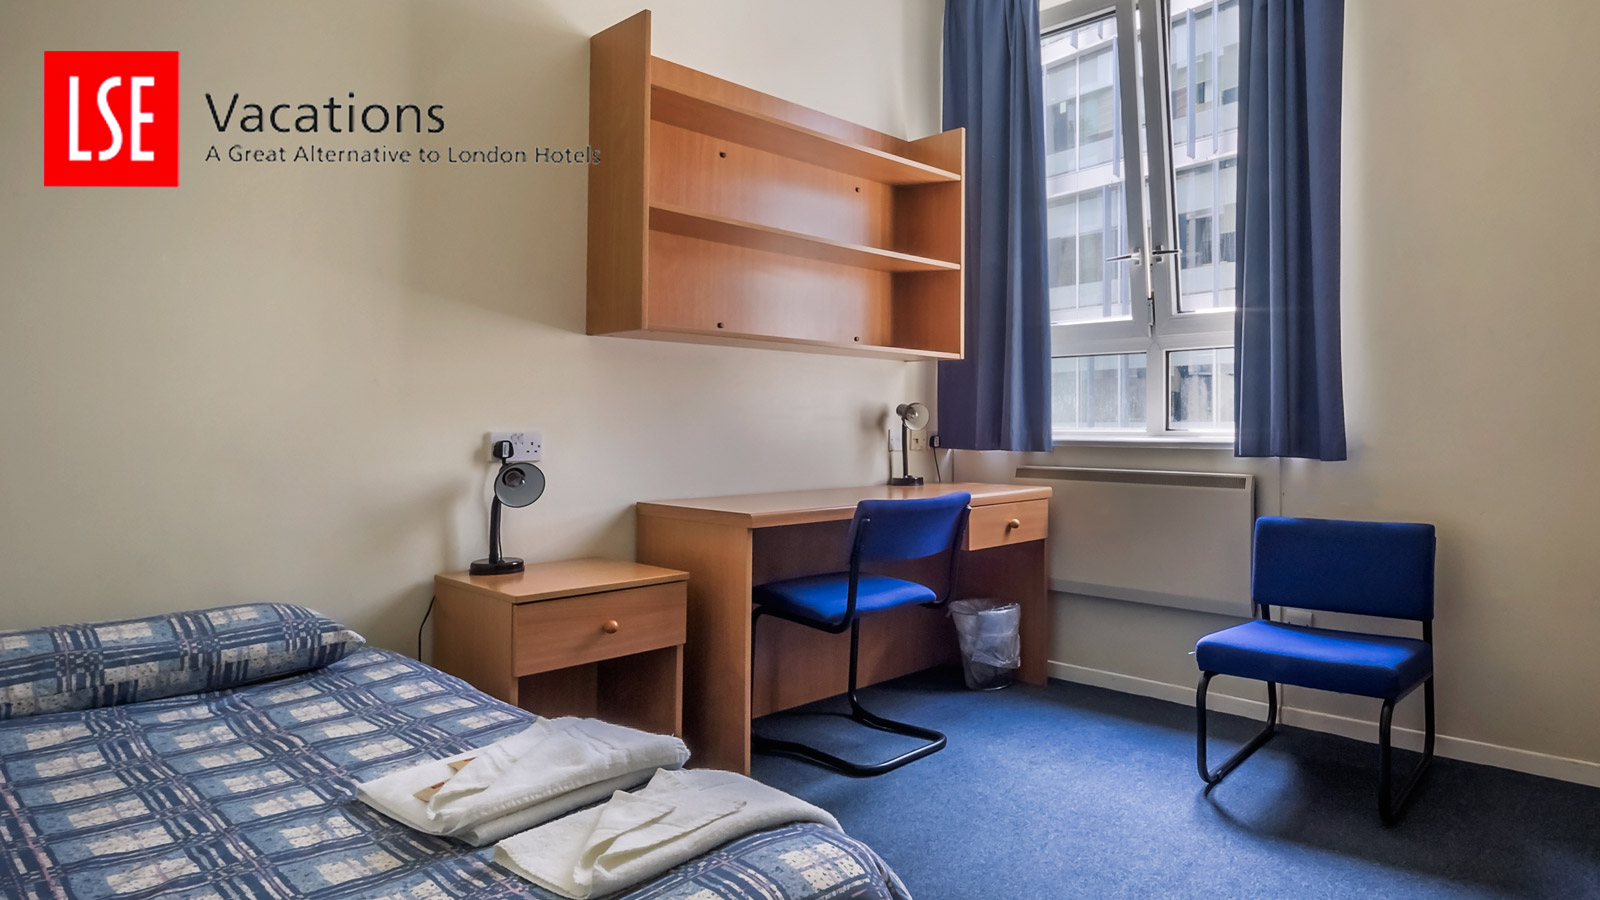 16x9-lsevacations-promo-bankside-room